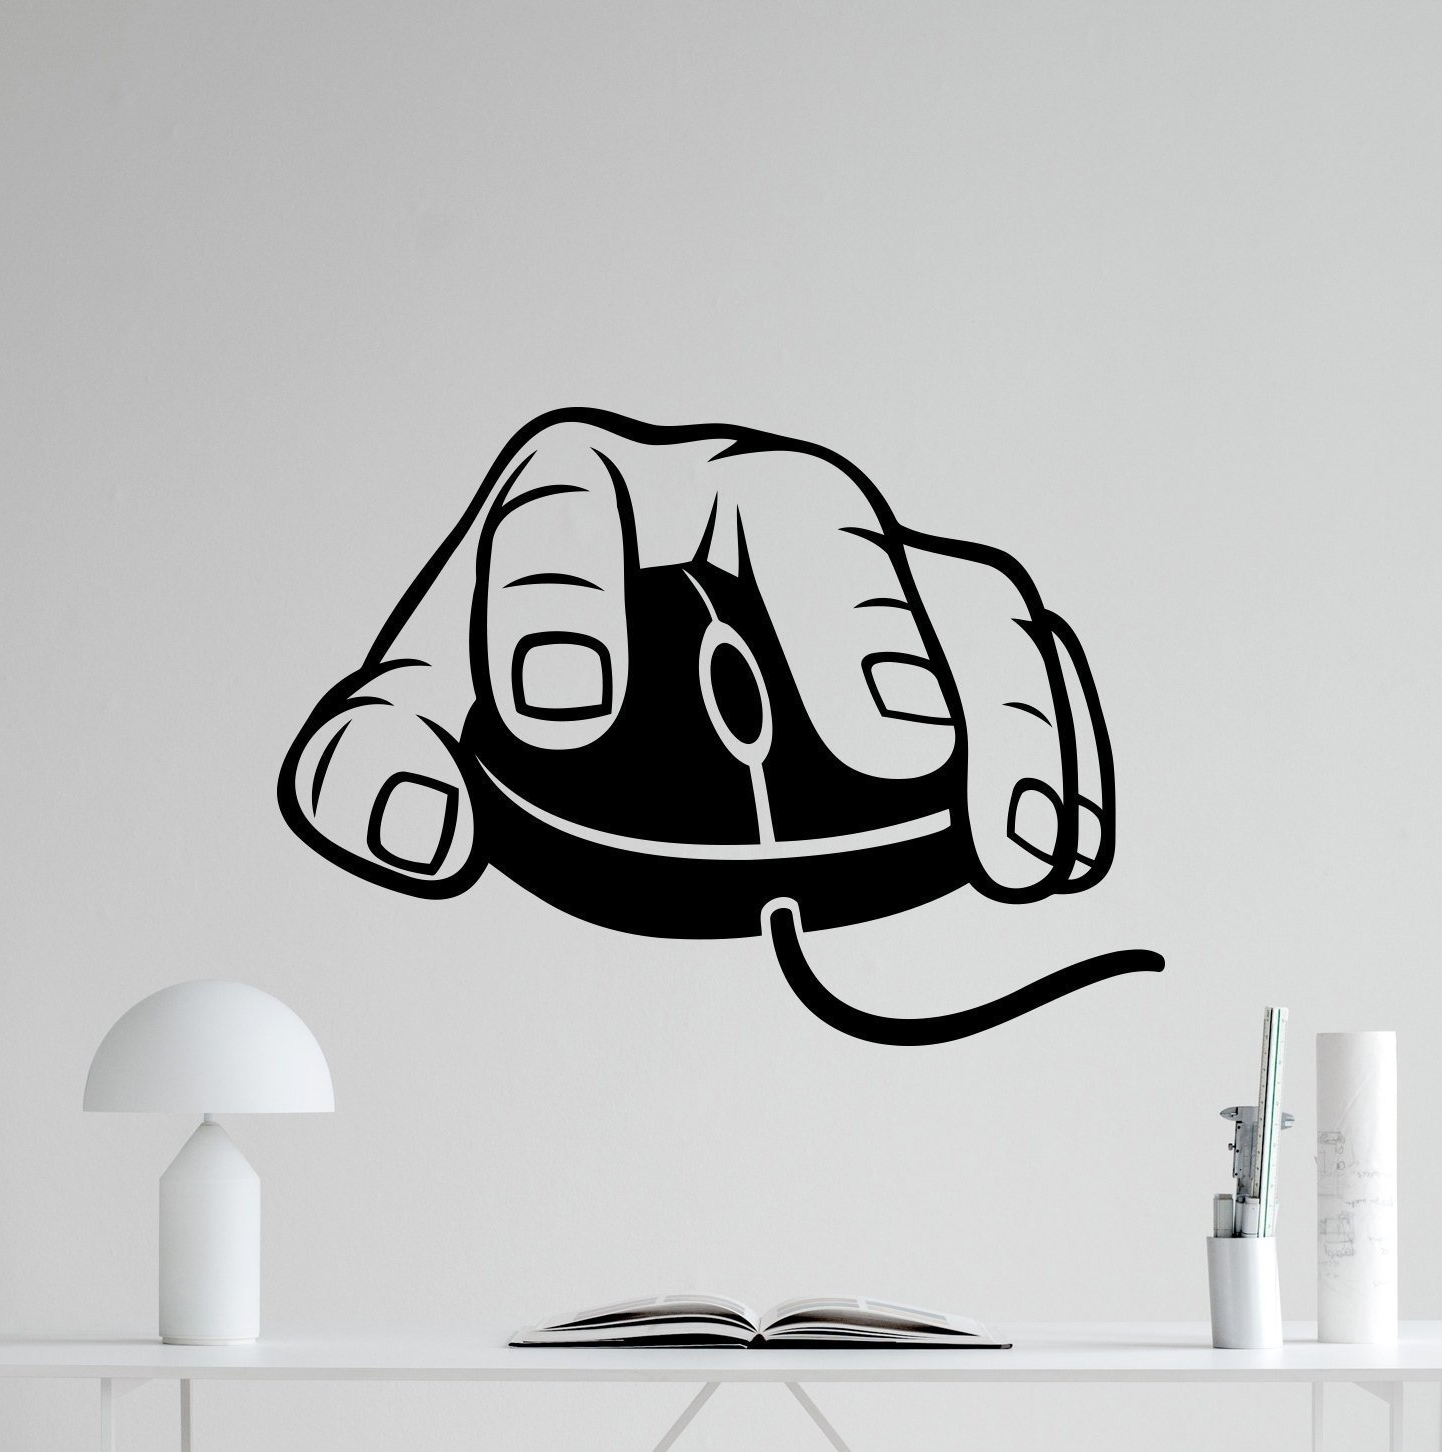 Computer Mouse Wall Decal Gaming Gamer Video Game Vinyl Sticker Intended For Recent Computer Wall Art (View 3 of 15)